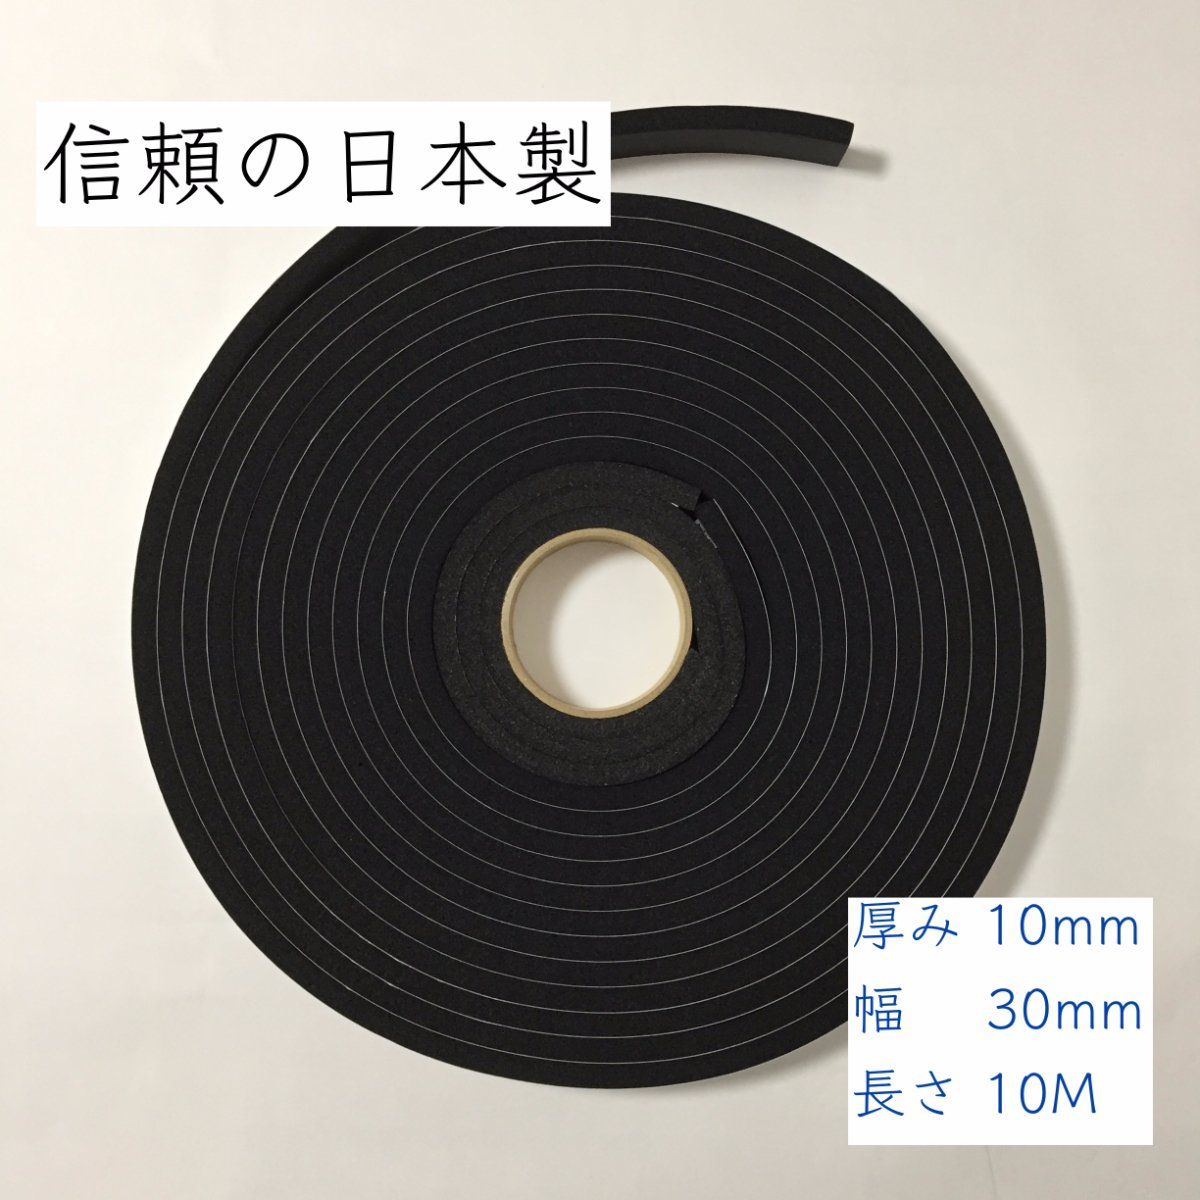 1//2Thick X 7//8Wide X 33`Long Toughlong with Tape- Wide and Long Sponge Rubber Sheet Roll EPDM Soundproof with Tape Heat Insulation Shock Absorption EAN -4573213471180 OKAYASU RUBBER Sound Absorption